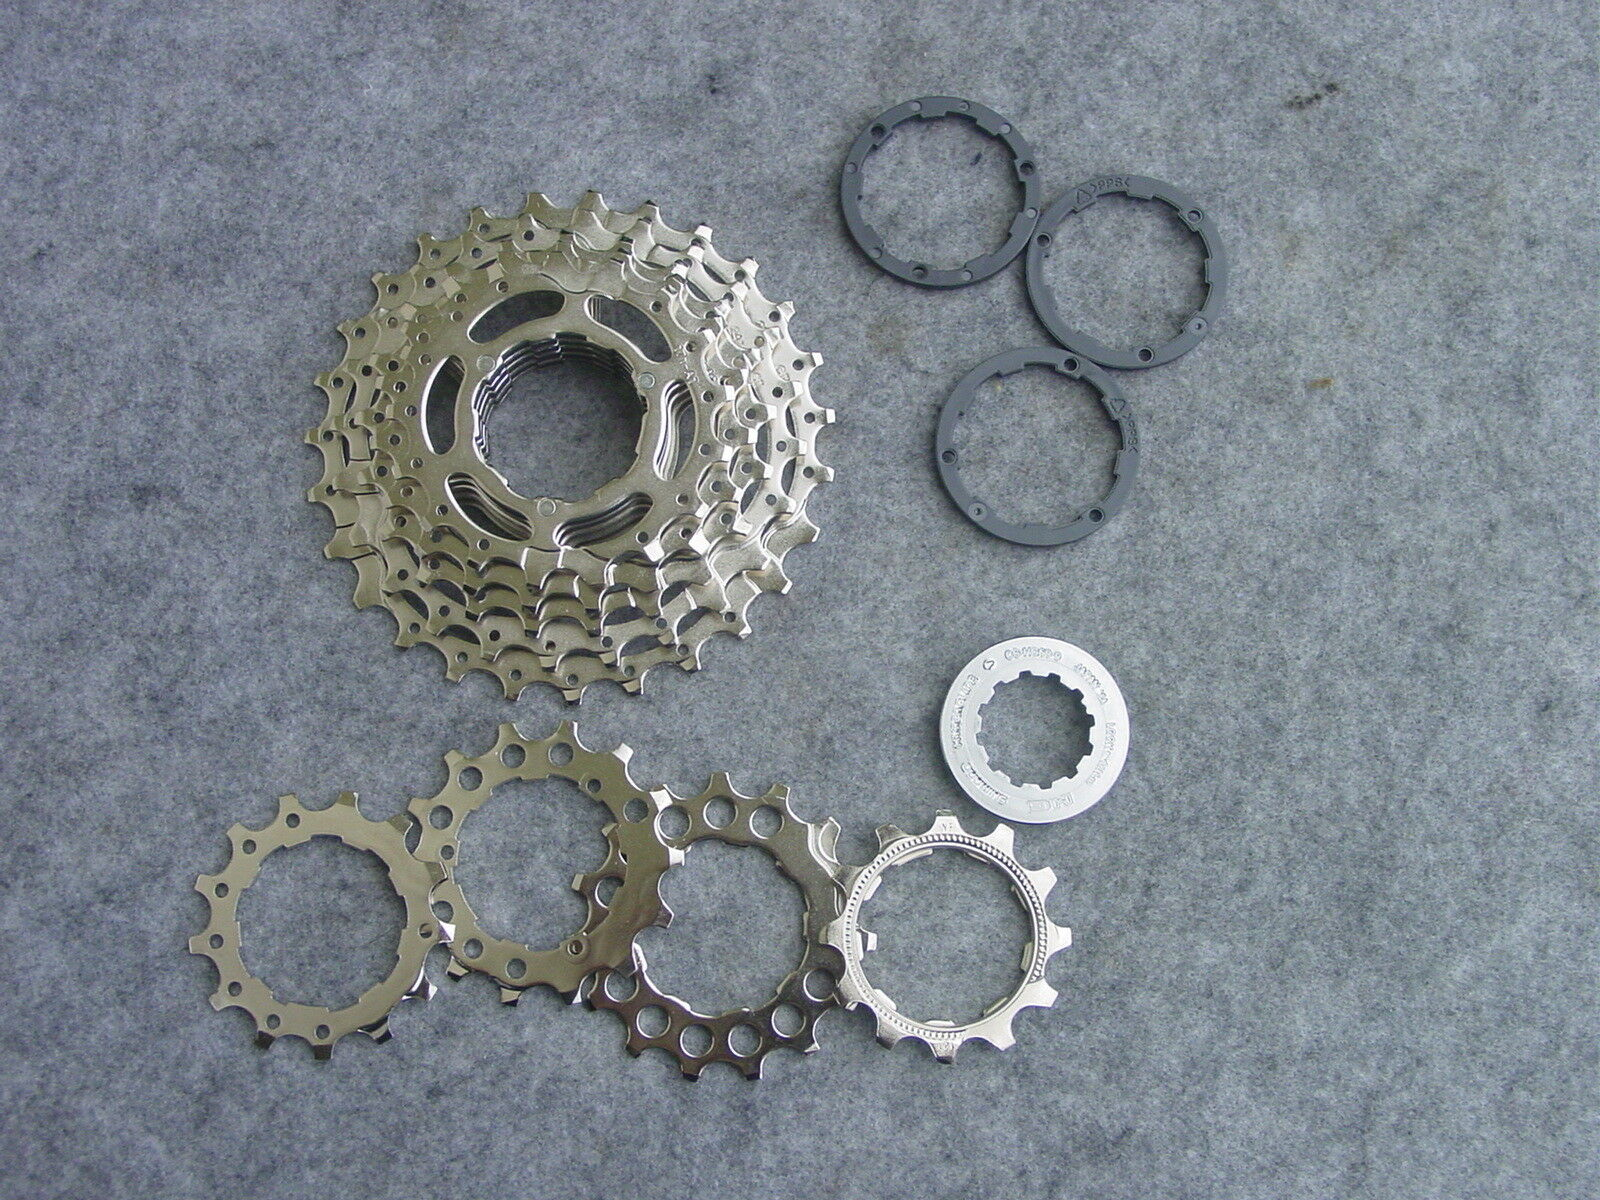 Cassette Sprocket Road Bike IG50 7 Speed 11T-28T MTB Cassette Fro Shimano